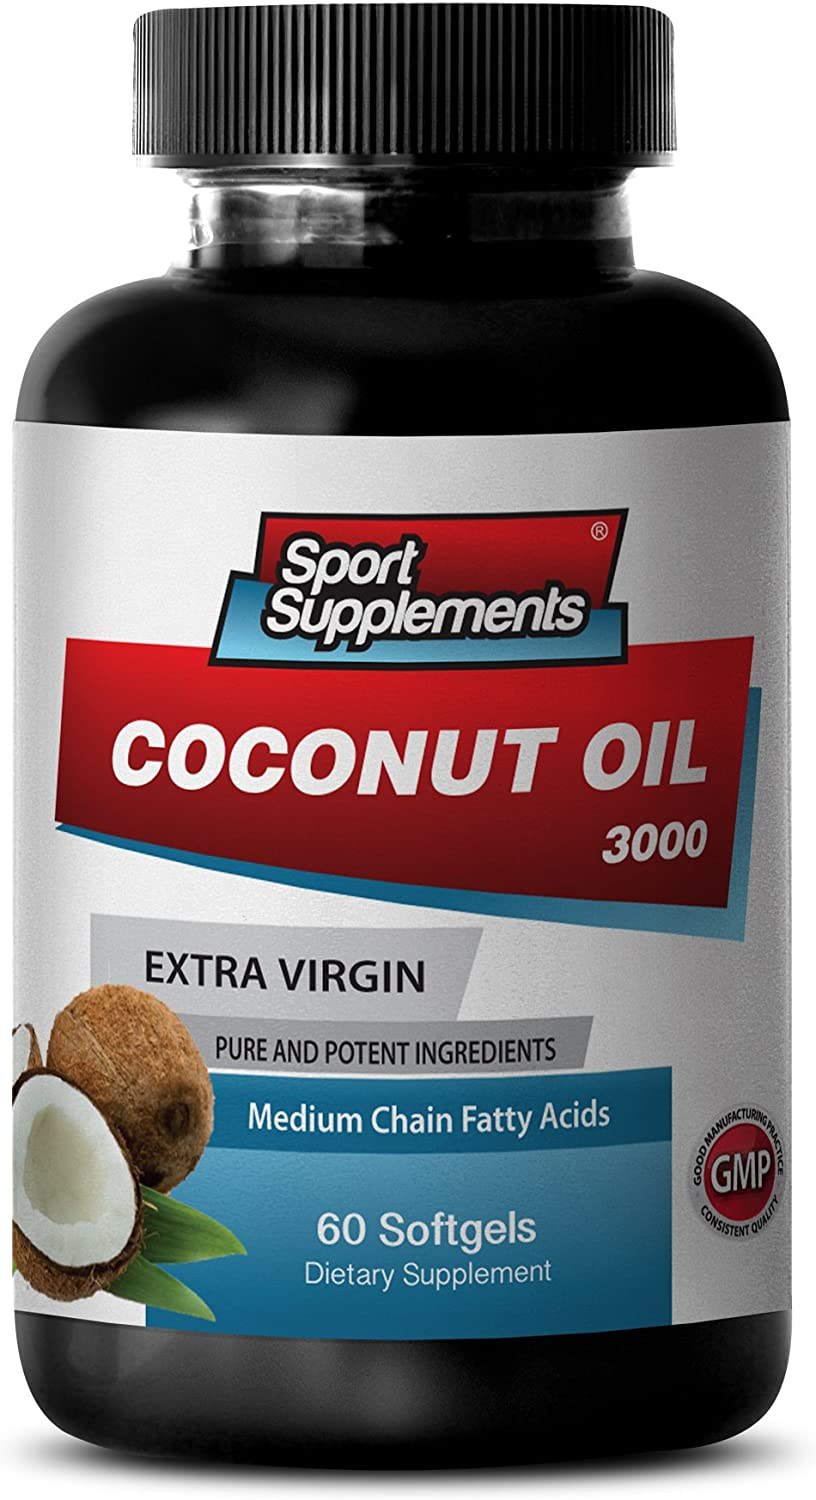 Metabolism Booster for Weight Loss - Coconut Oil 3000MG Extra Vi